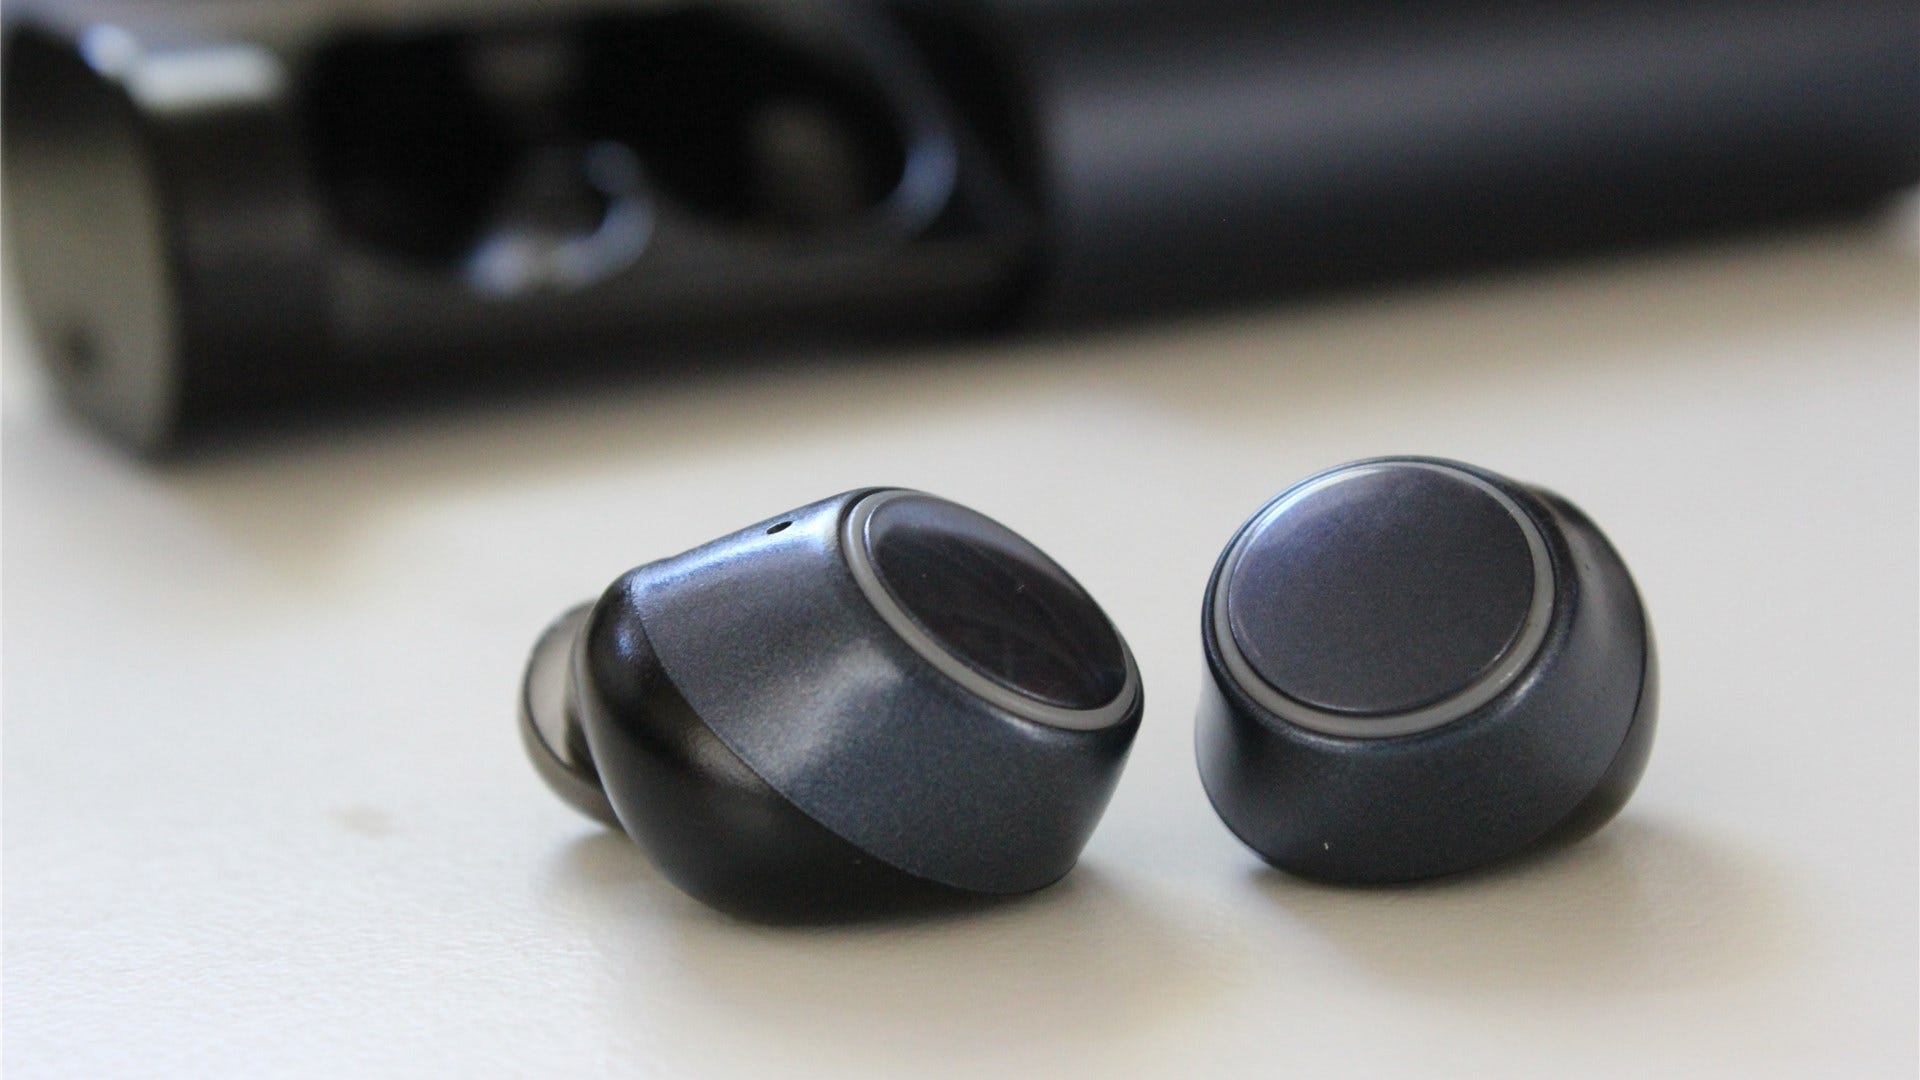 The Outlier Air v2 earbuds on a white desk with the case opened in the background